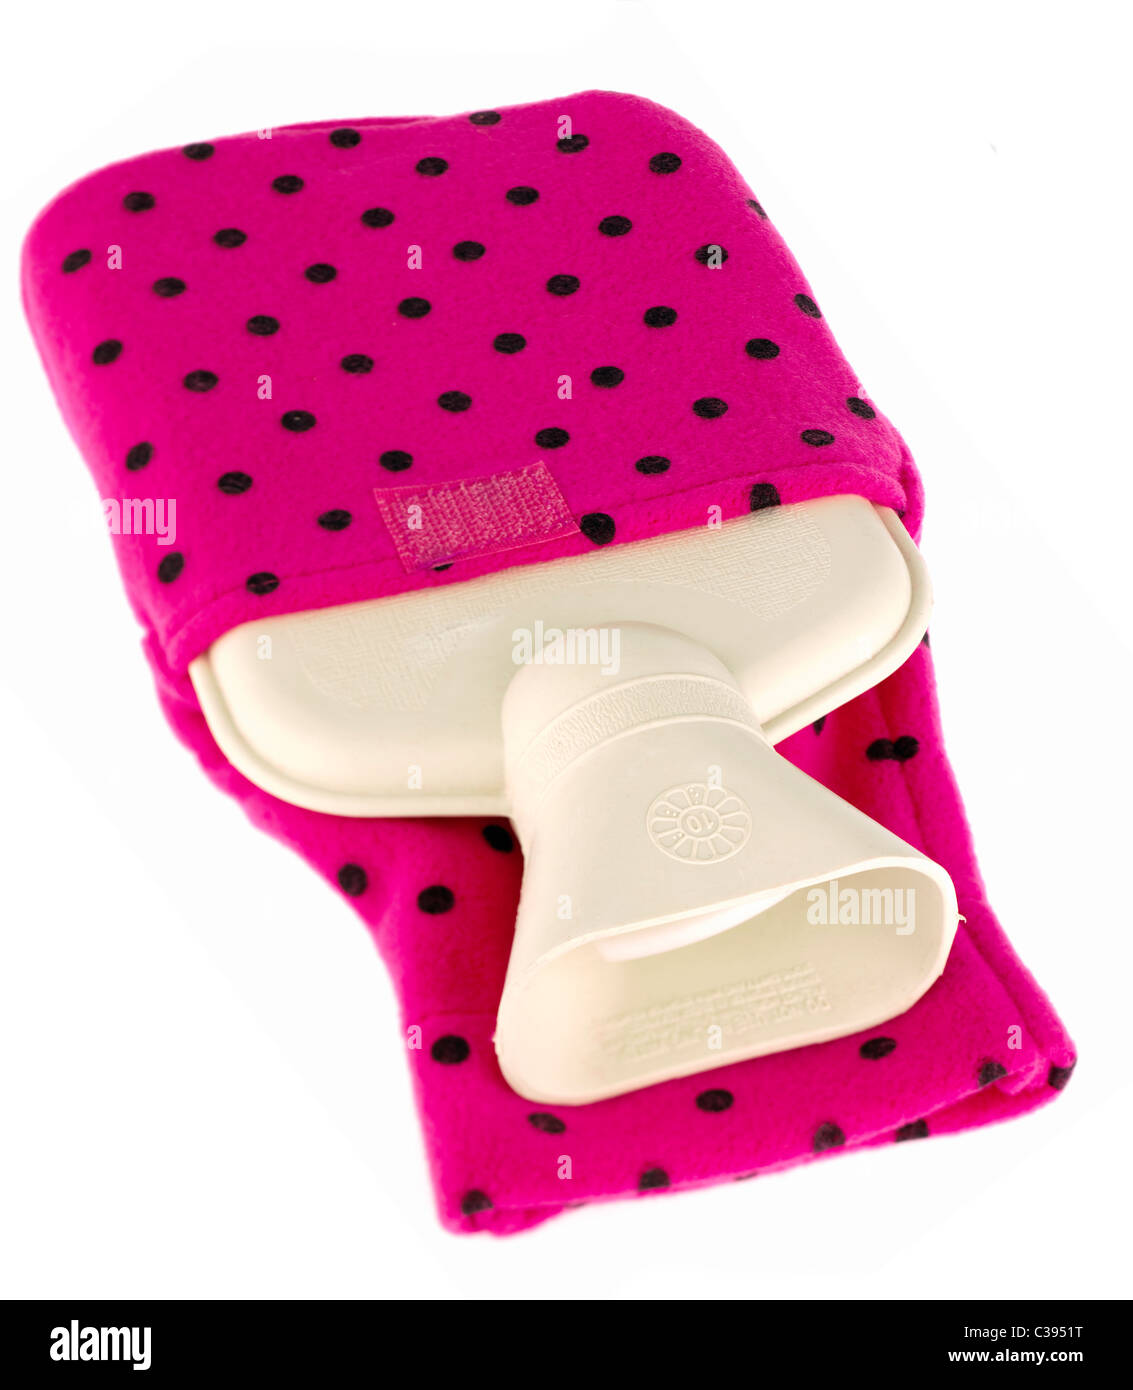 Small rubber hot waterbottle encased in a pink with black spots soft nylon cover - Stock Image